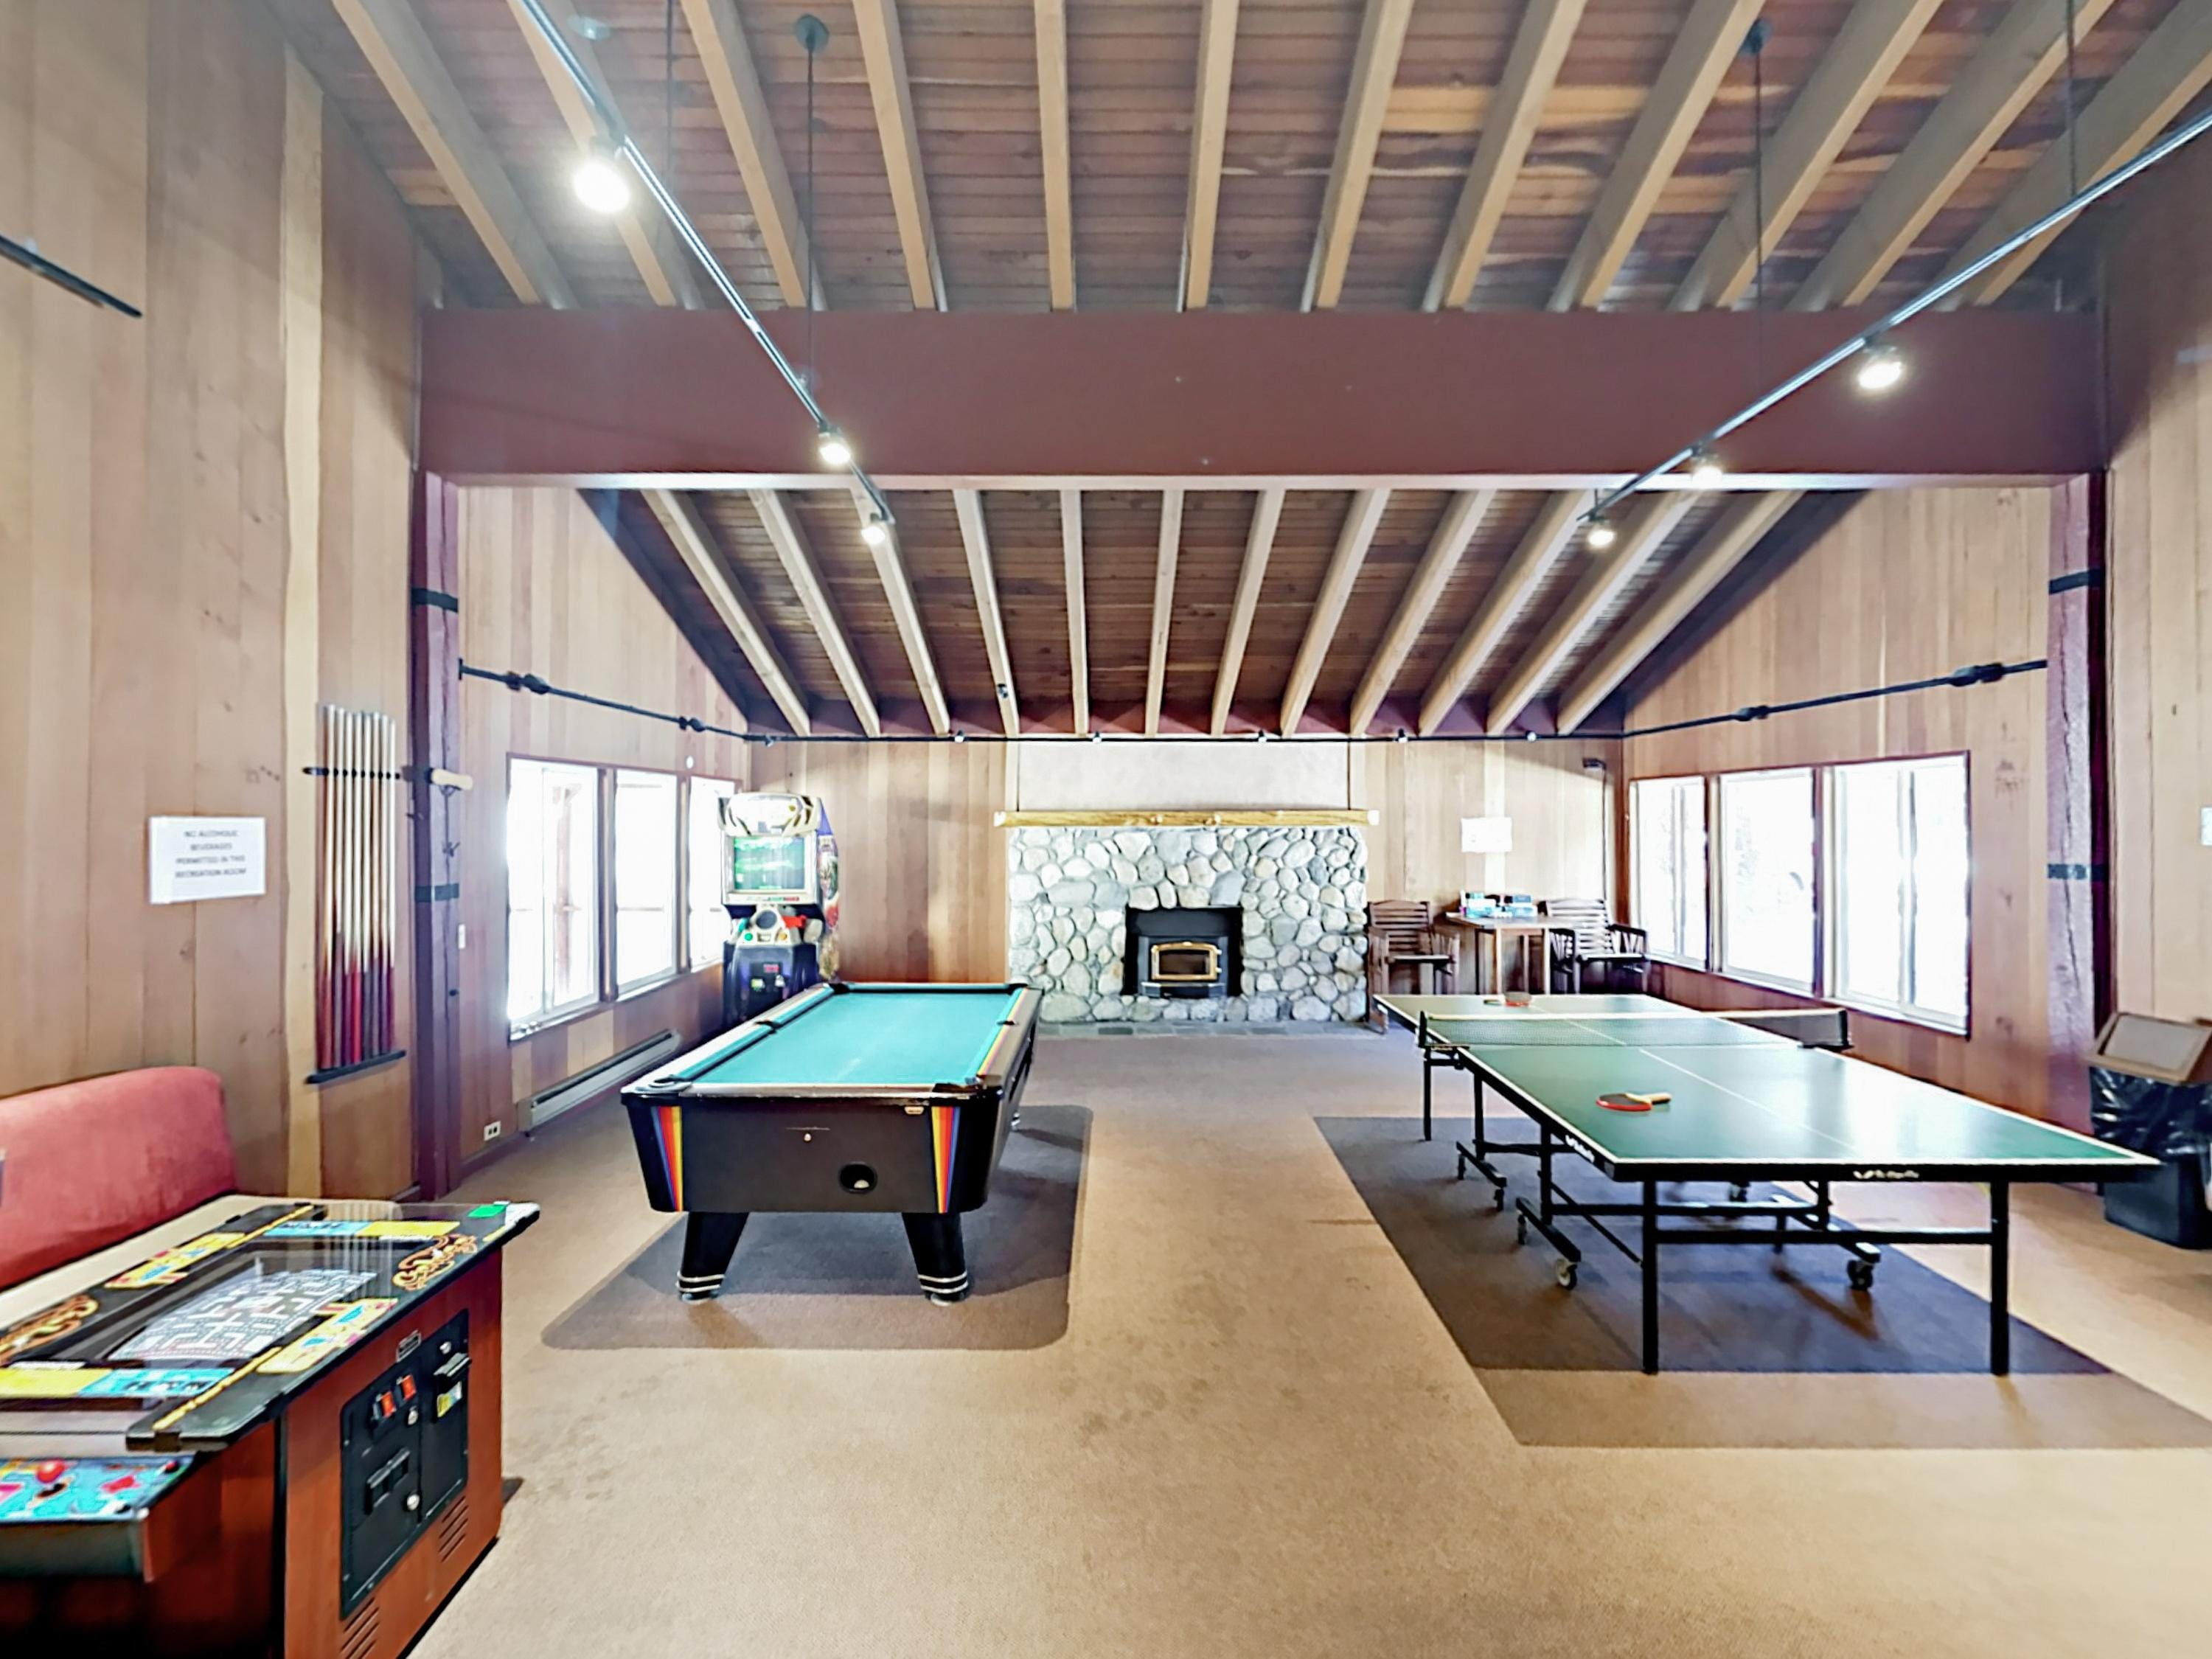 Head to the shared recreation room for billiards, ping-pong, and arcade games.